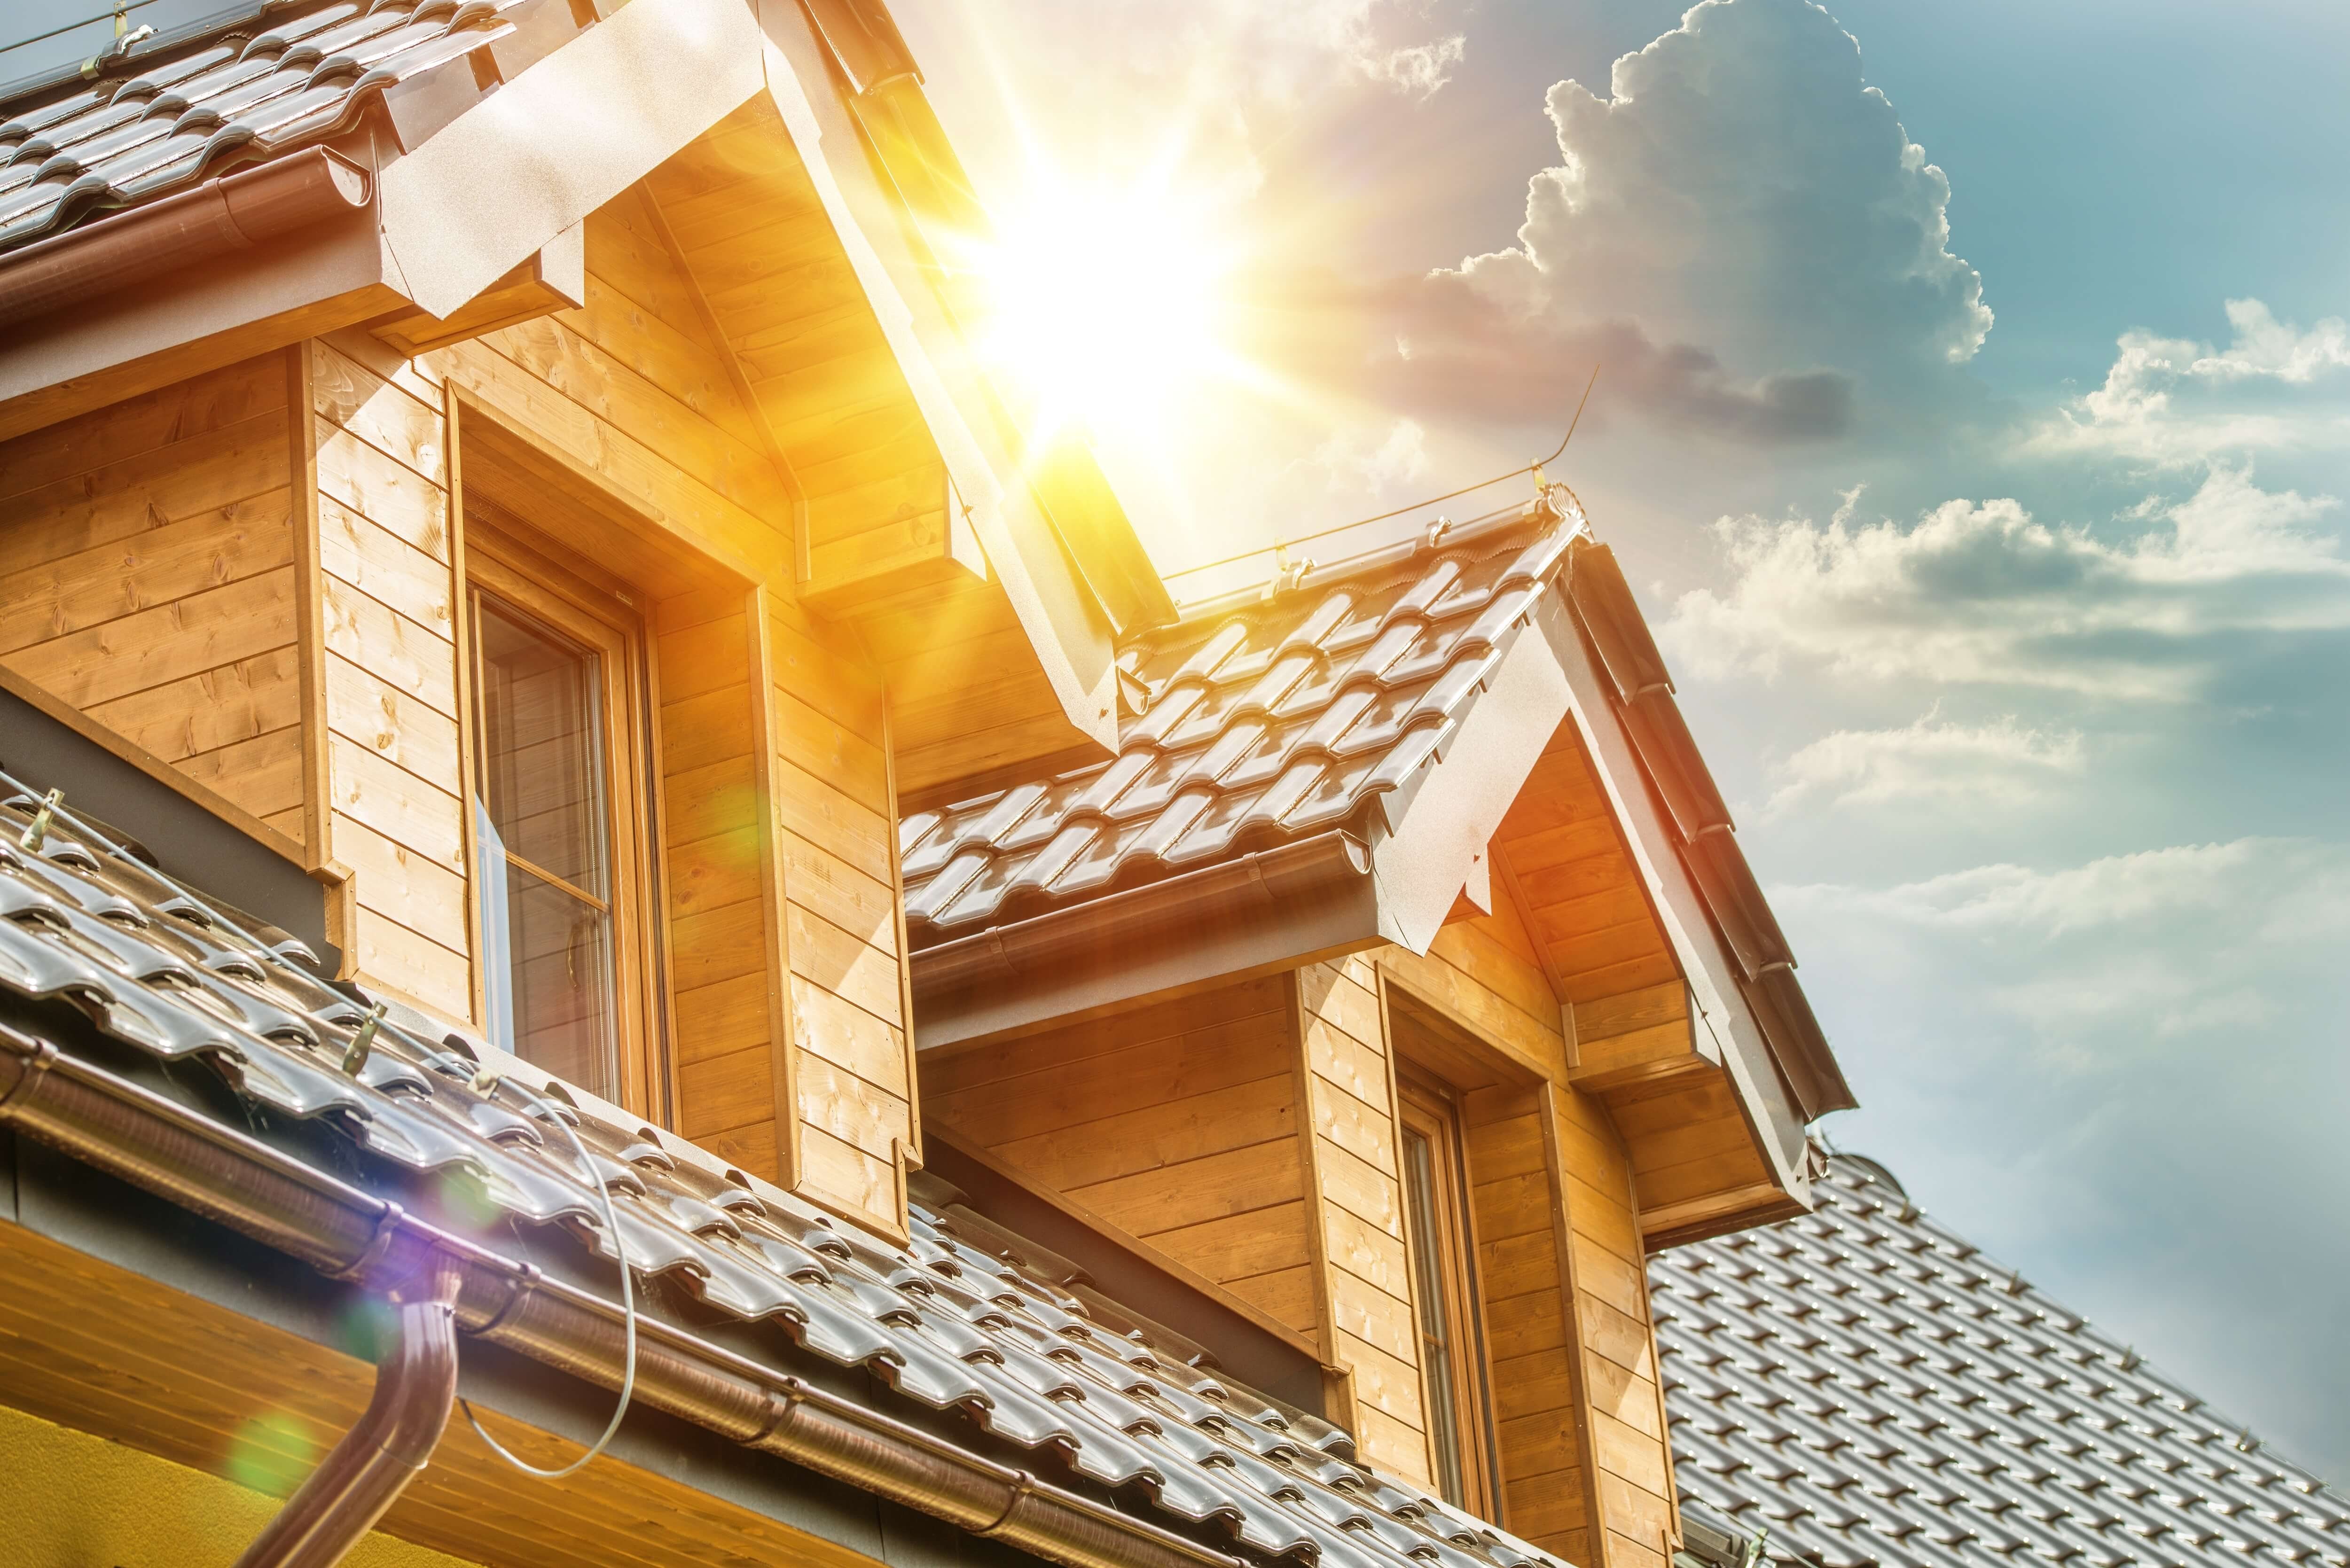 Spring Roofing Projects from Terre Haute Roofing Experts